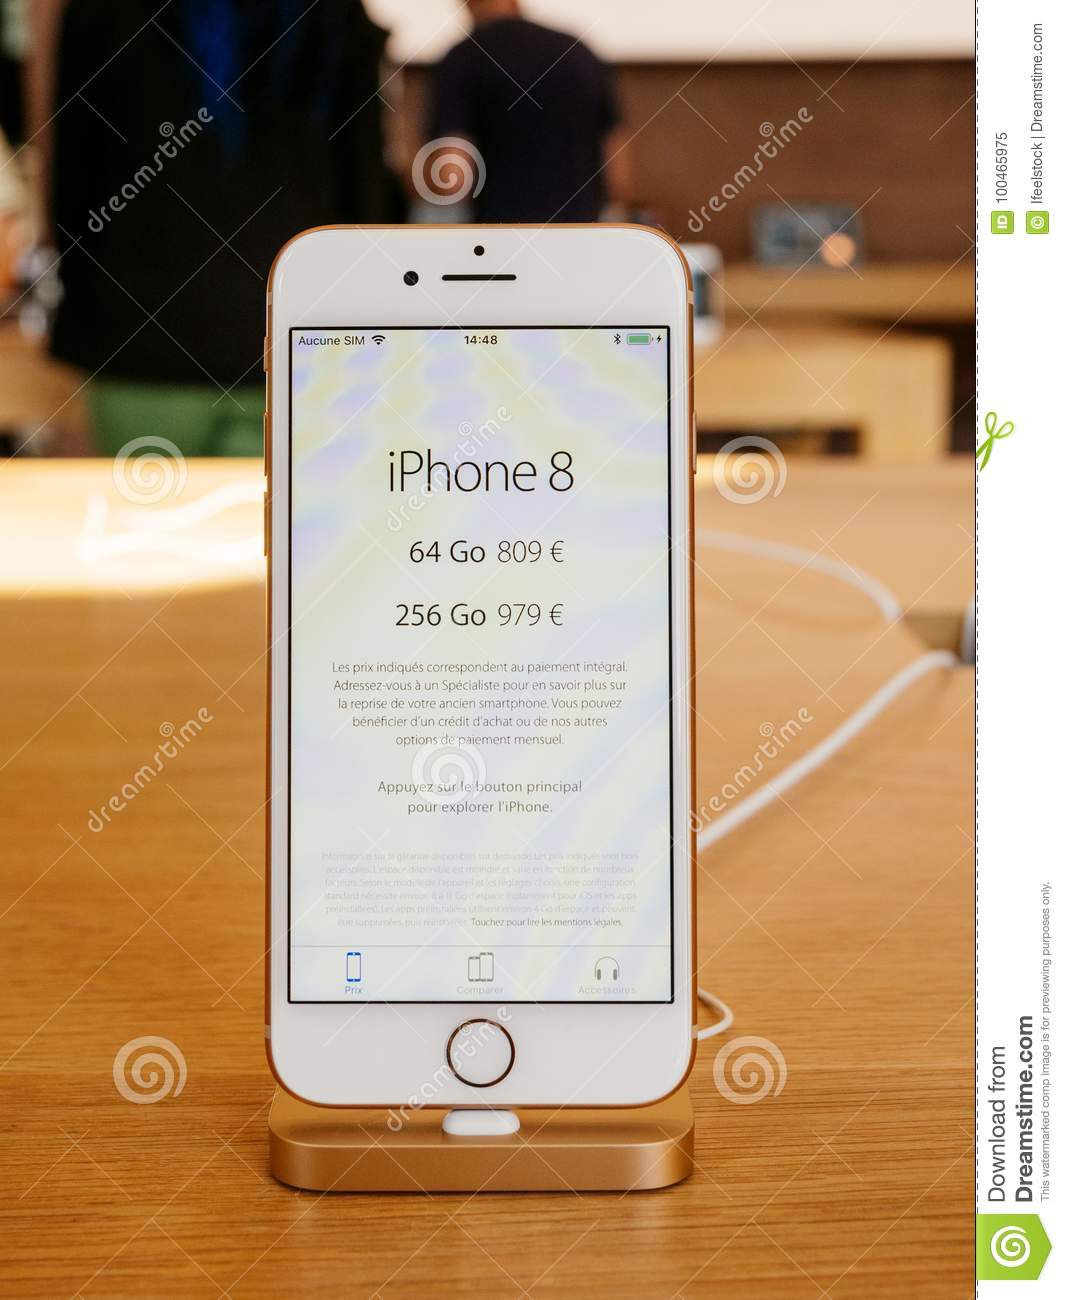 Apple Price New Iphone 8 And Iphone 8 Plus In Apple Store Editorial Image Image Of Iphone Apple 100465975